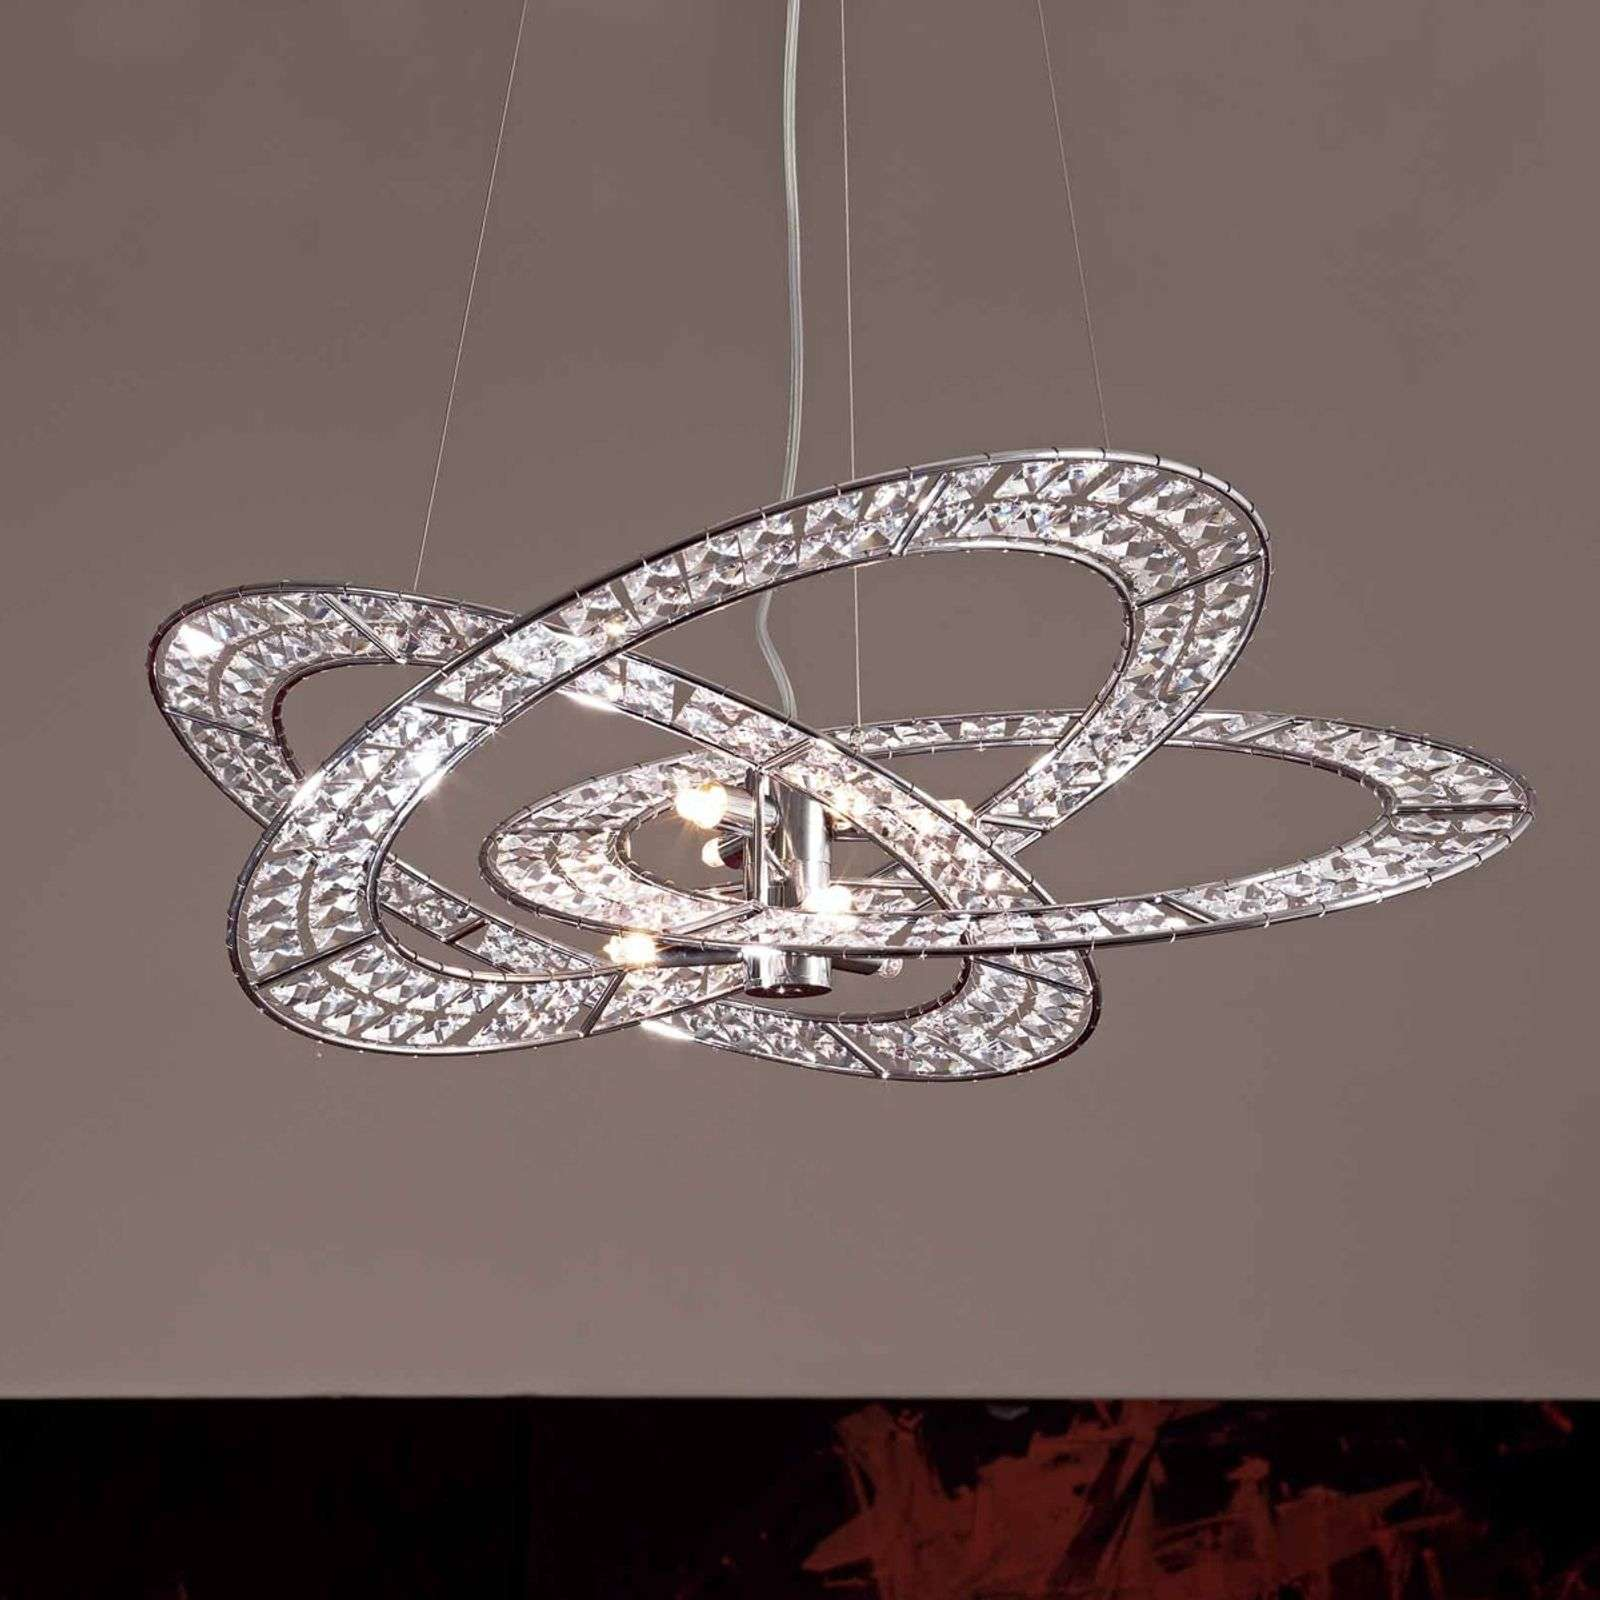 Belle suspension cristal Trilogy à 9 lampes clair